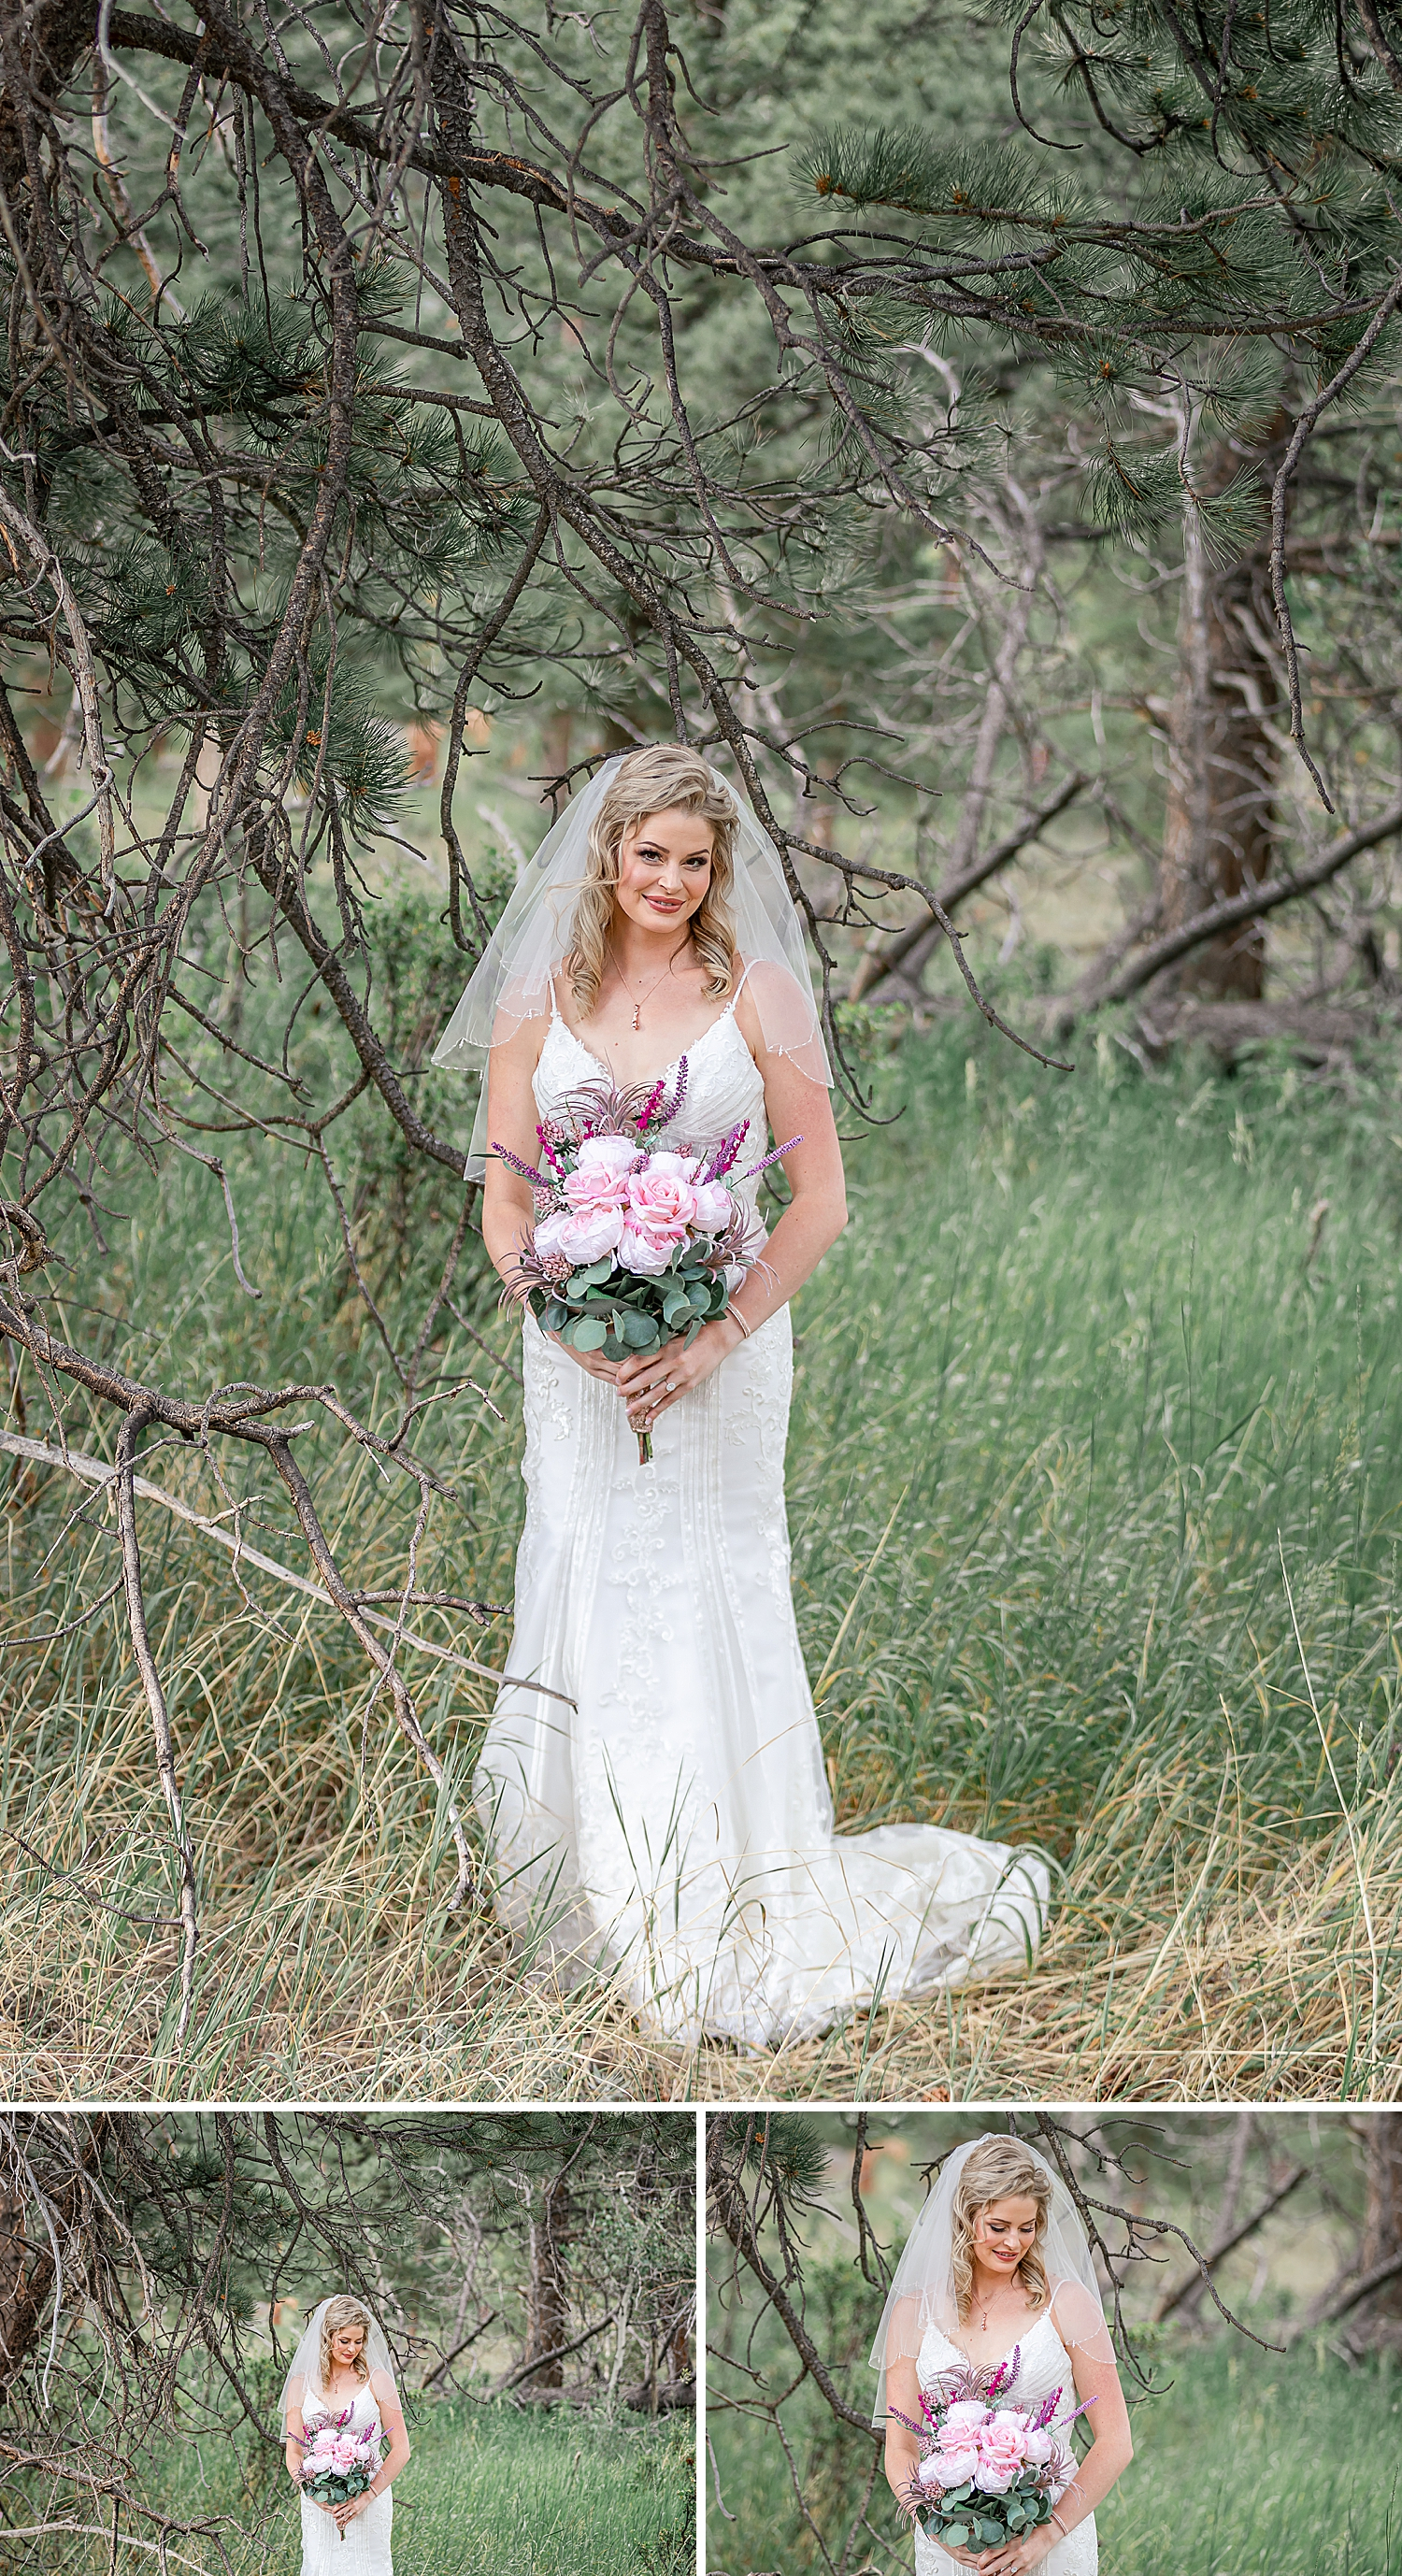 Carly-Barton-Photography-Rocky-Mountain-National-Park-Estes-Park-Wedding-Elopement_0071.jpg